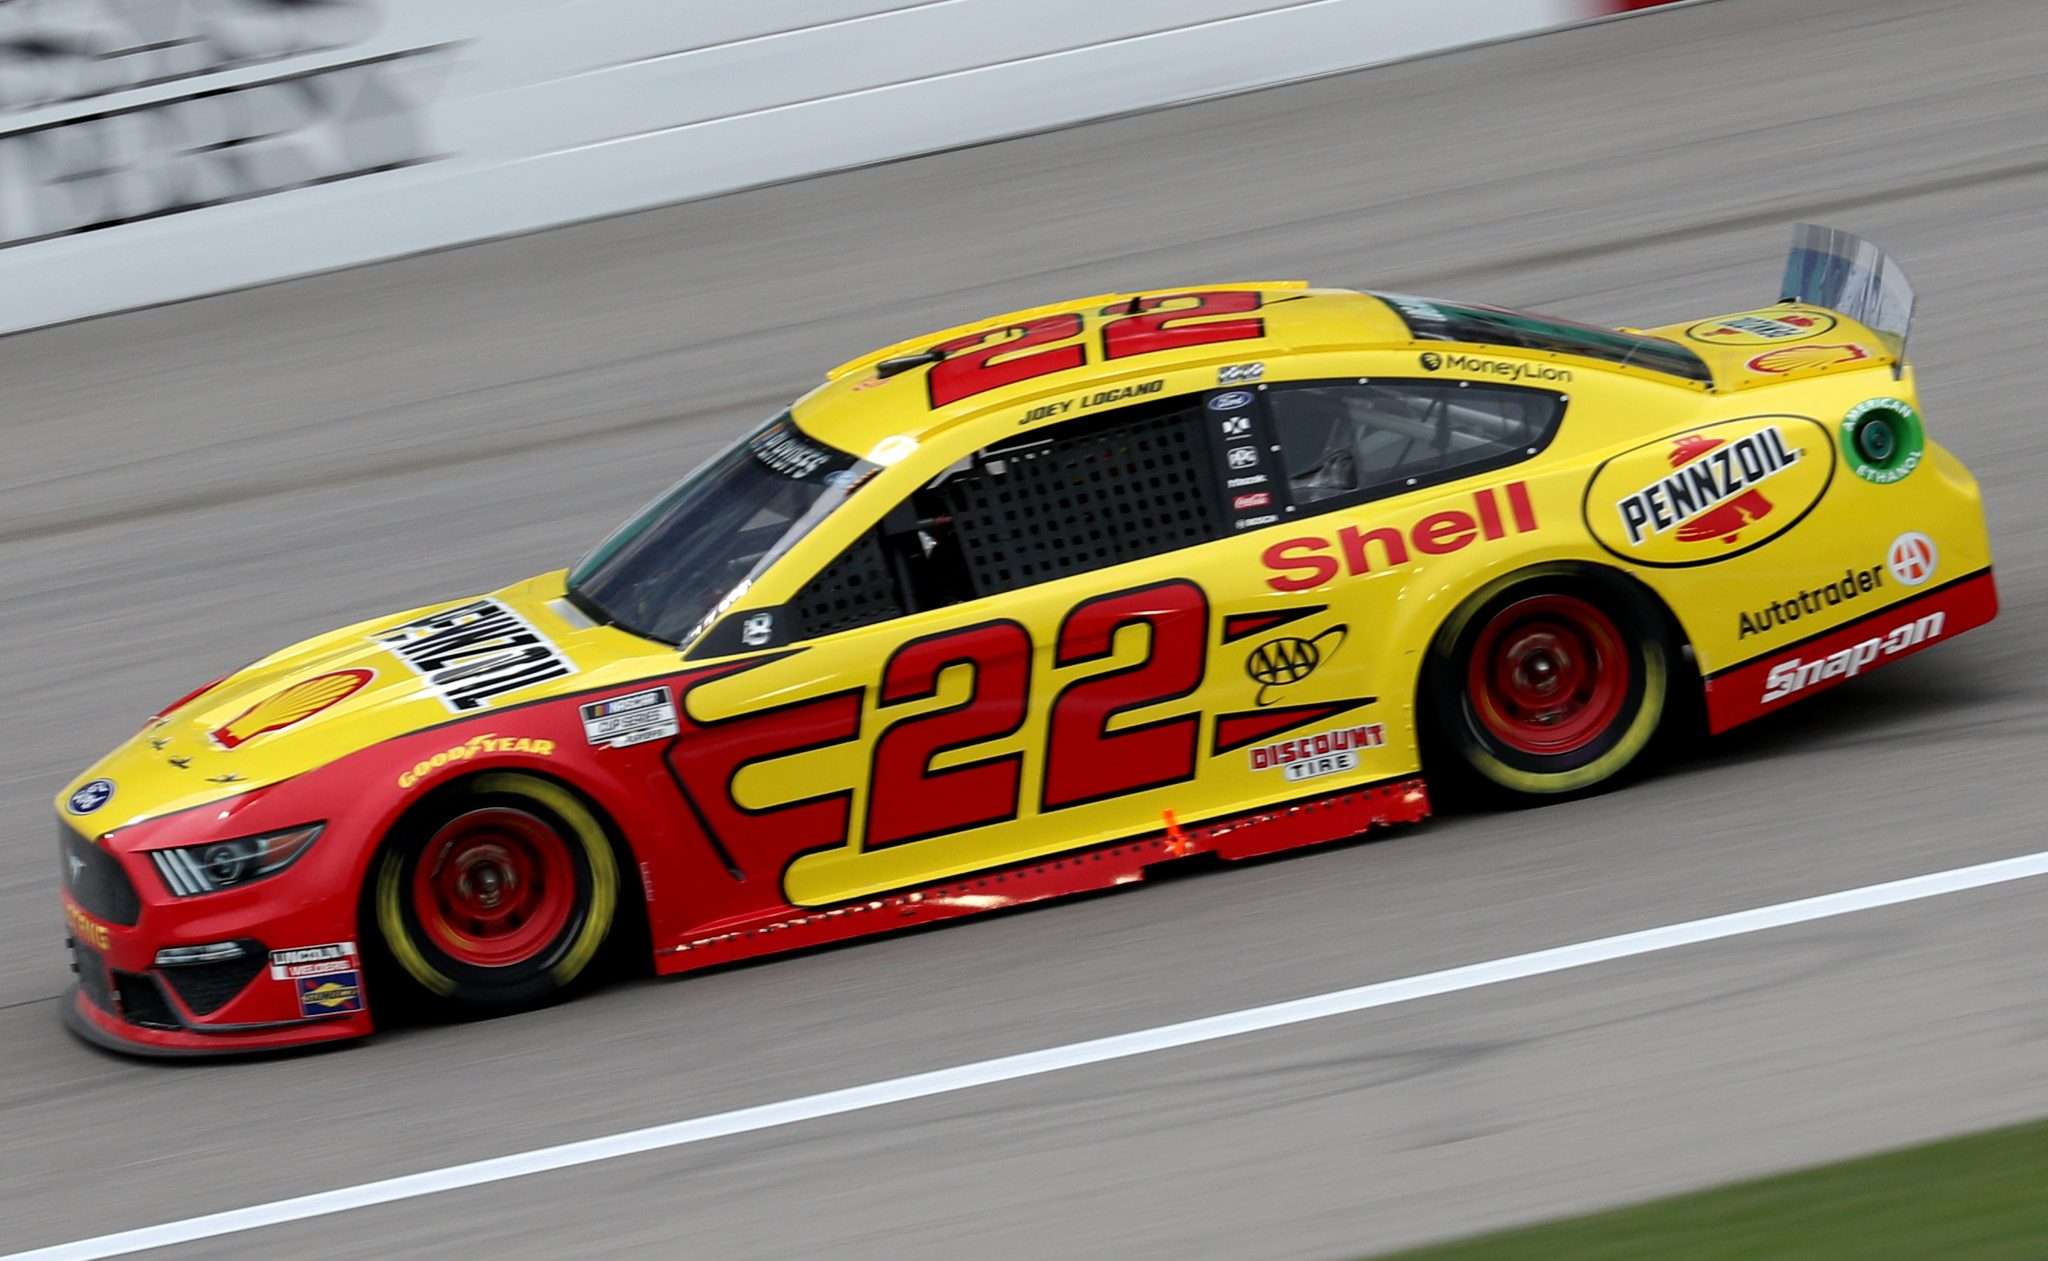 KANSAS CITY, KANSAS - OCTOBER 18: Joey Logano, driver of the #22 Shell Pennzoil Ford, drives during the NASCAR Cup Series Hollywood Casino 400 at Kansas Speedway on October 18, 2020 in Kansas City, Kansas. (Photo by Chris Graythen/Getty Images) | Getty Images